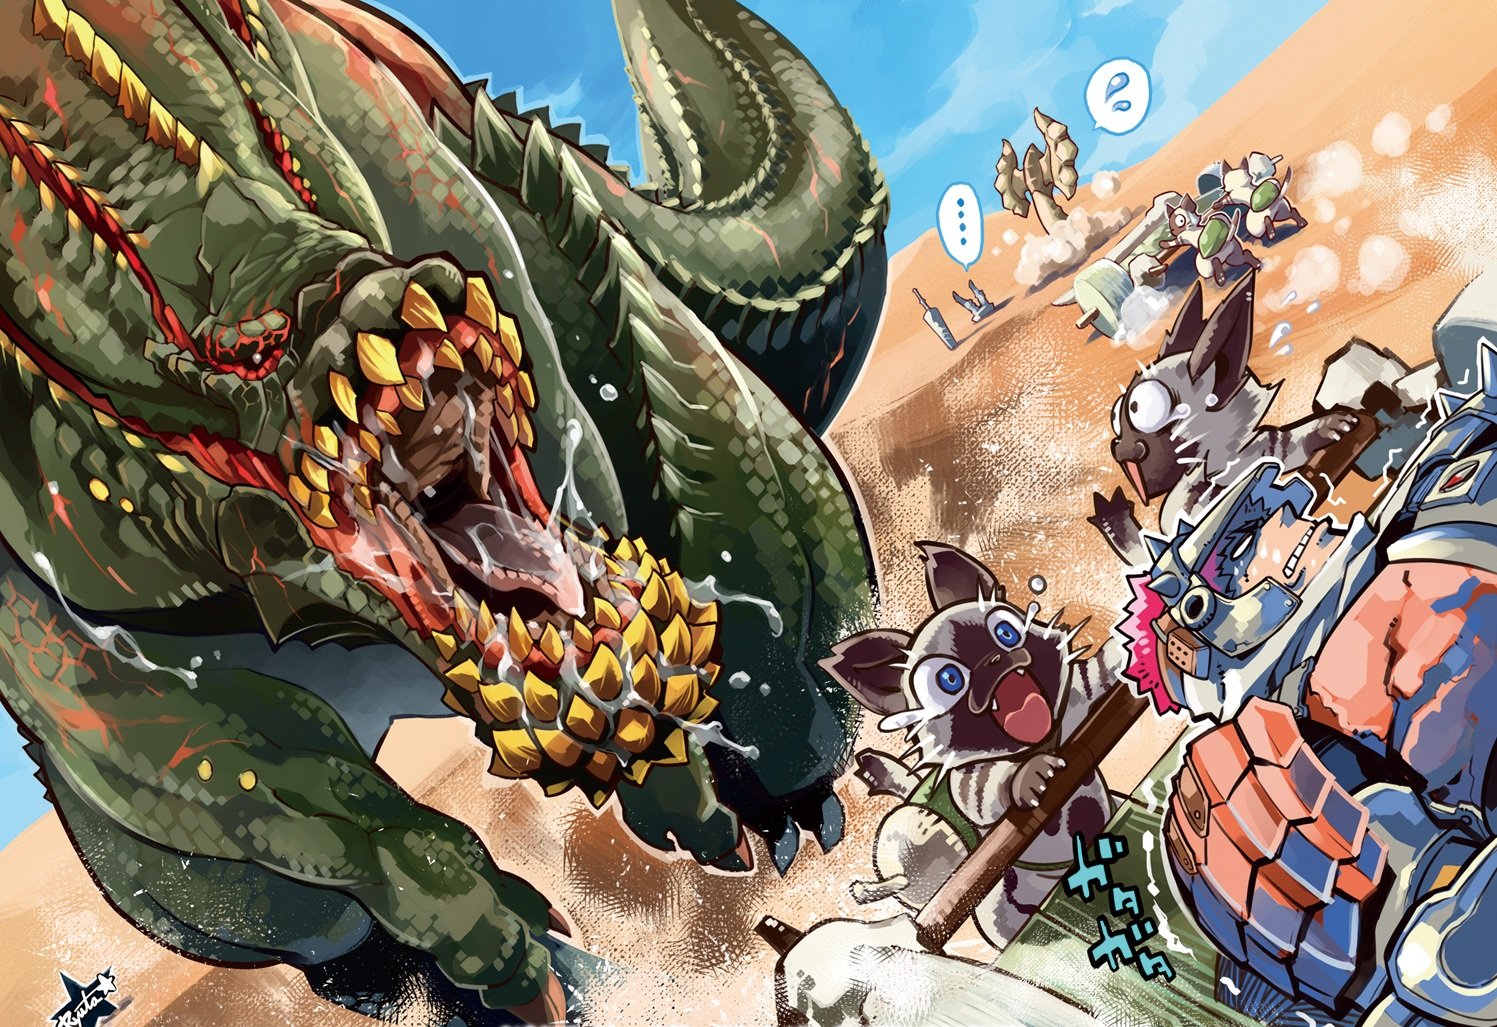 Monster Hunter Wallpaper and Background Image 1497x1027 ID 1497x1027